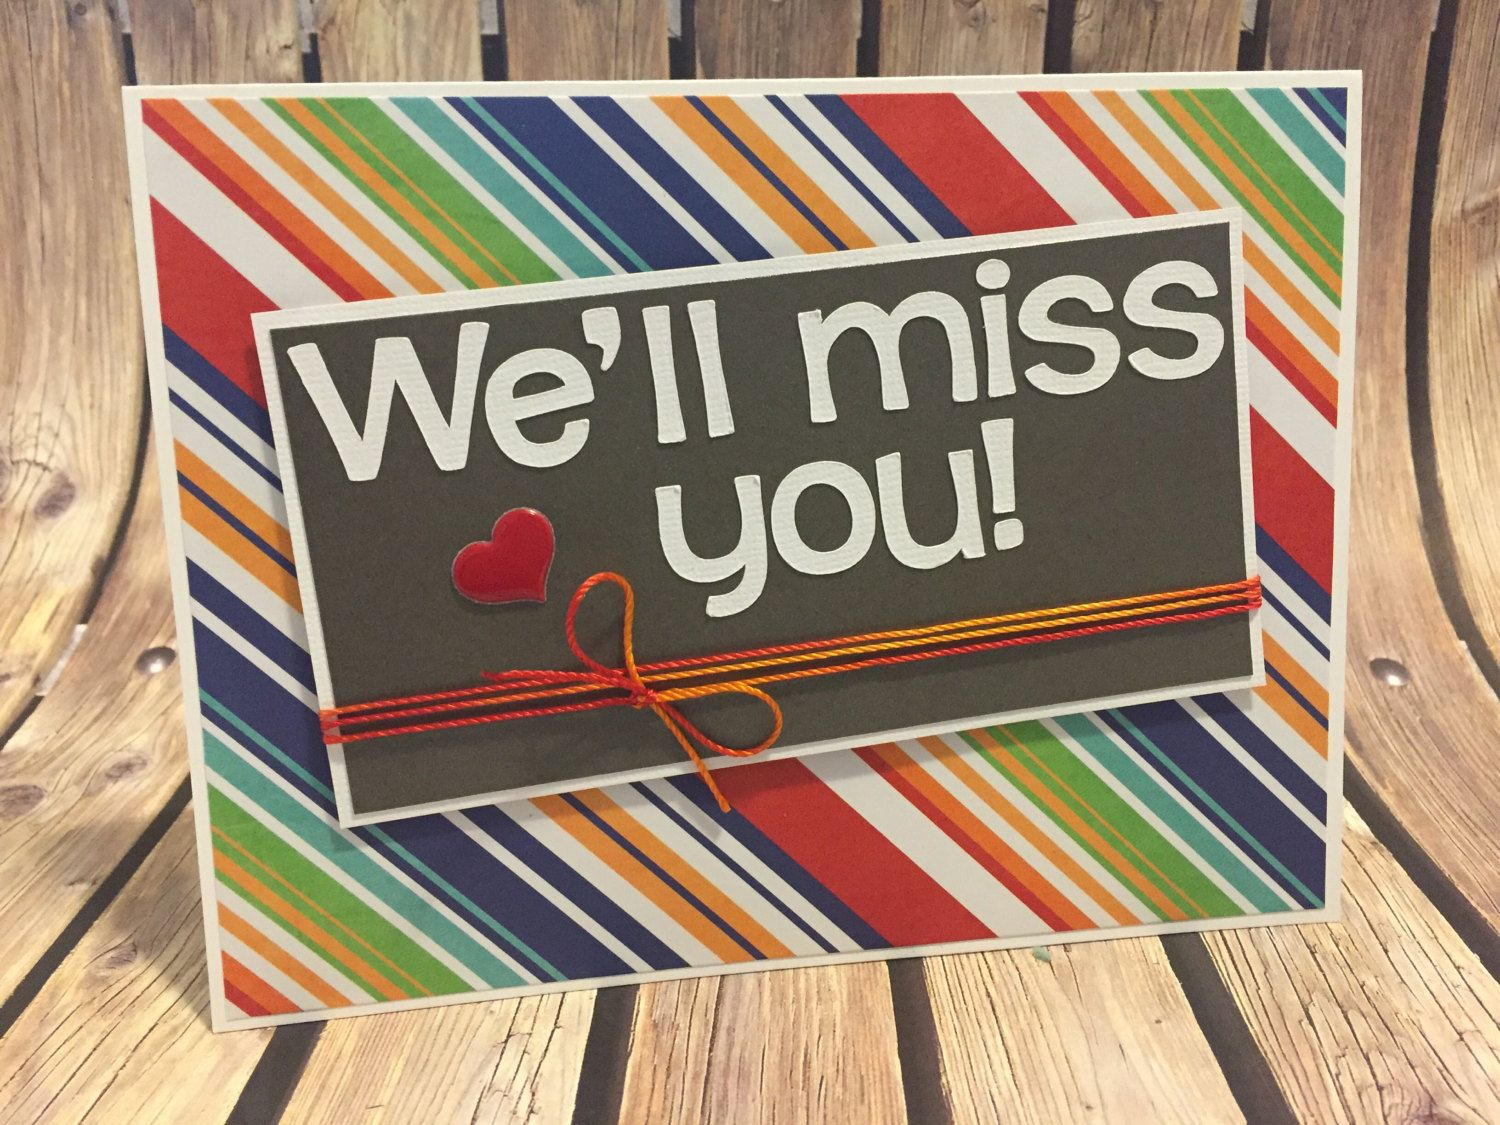 Handmade well miss you greeting card goodbye greeting card you greeting card goodbye greeting card kristyandbryce Image collections